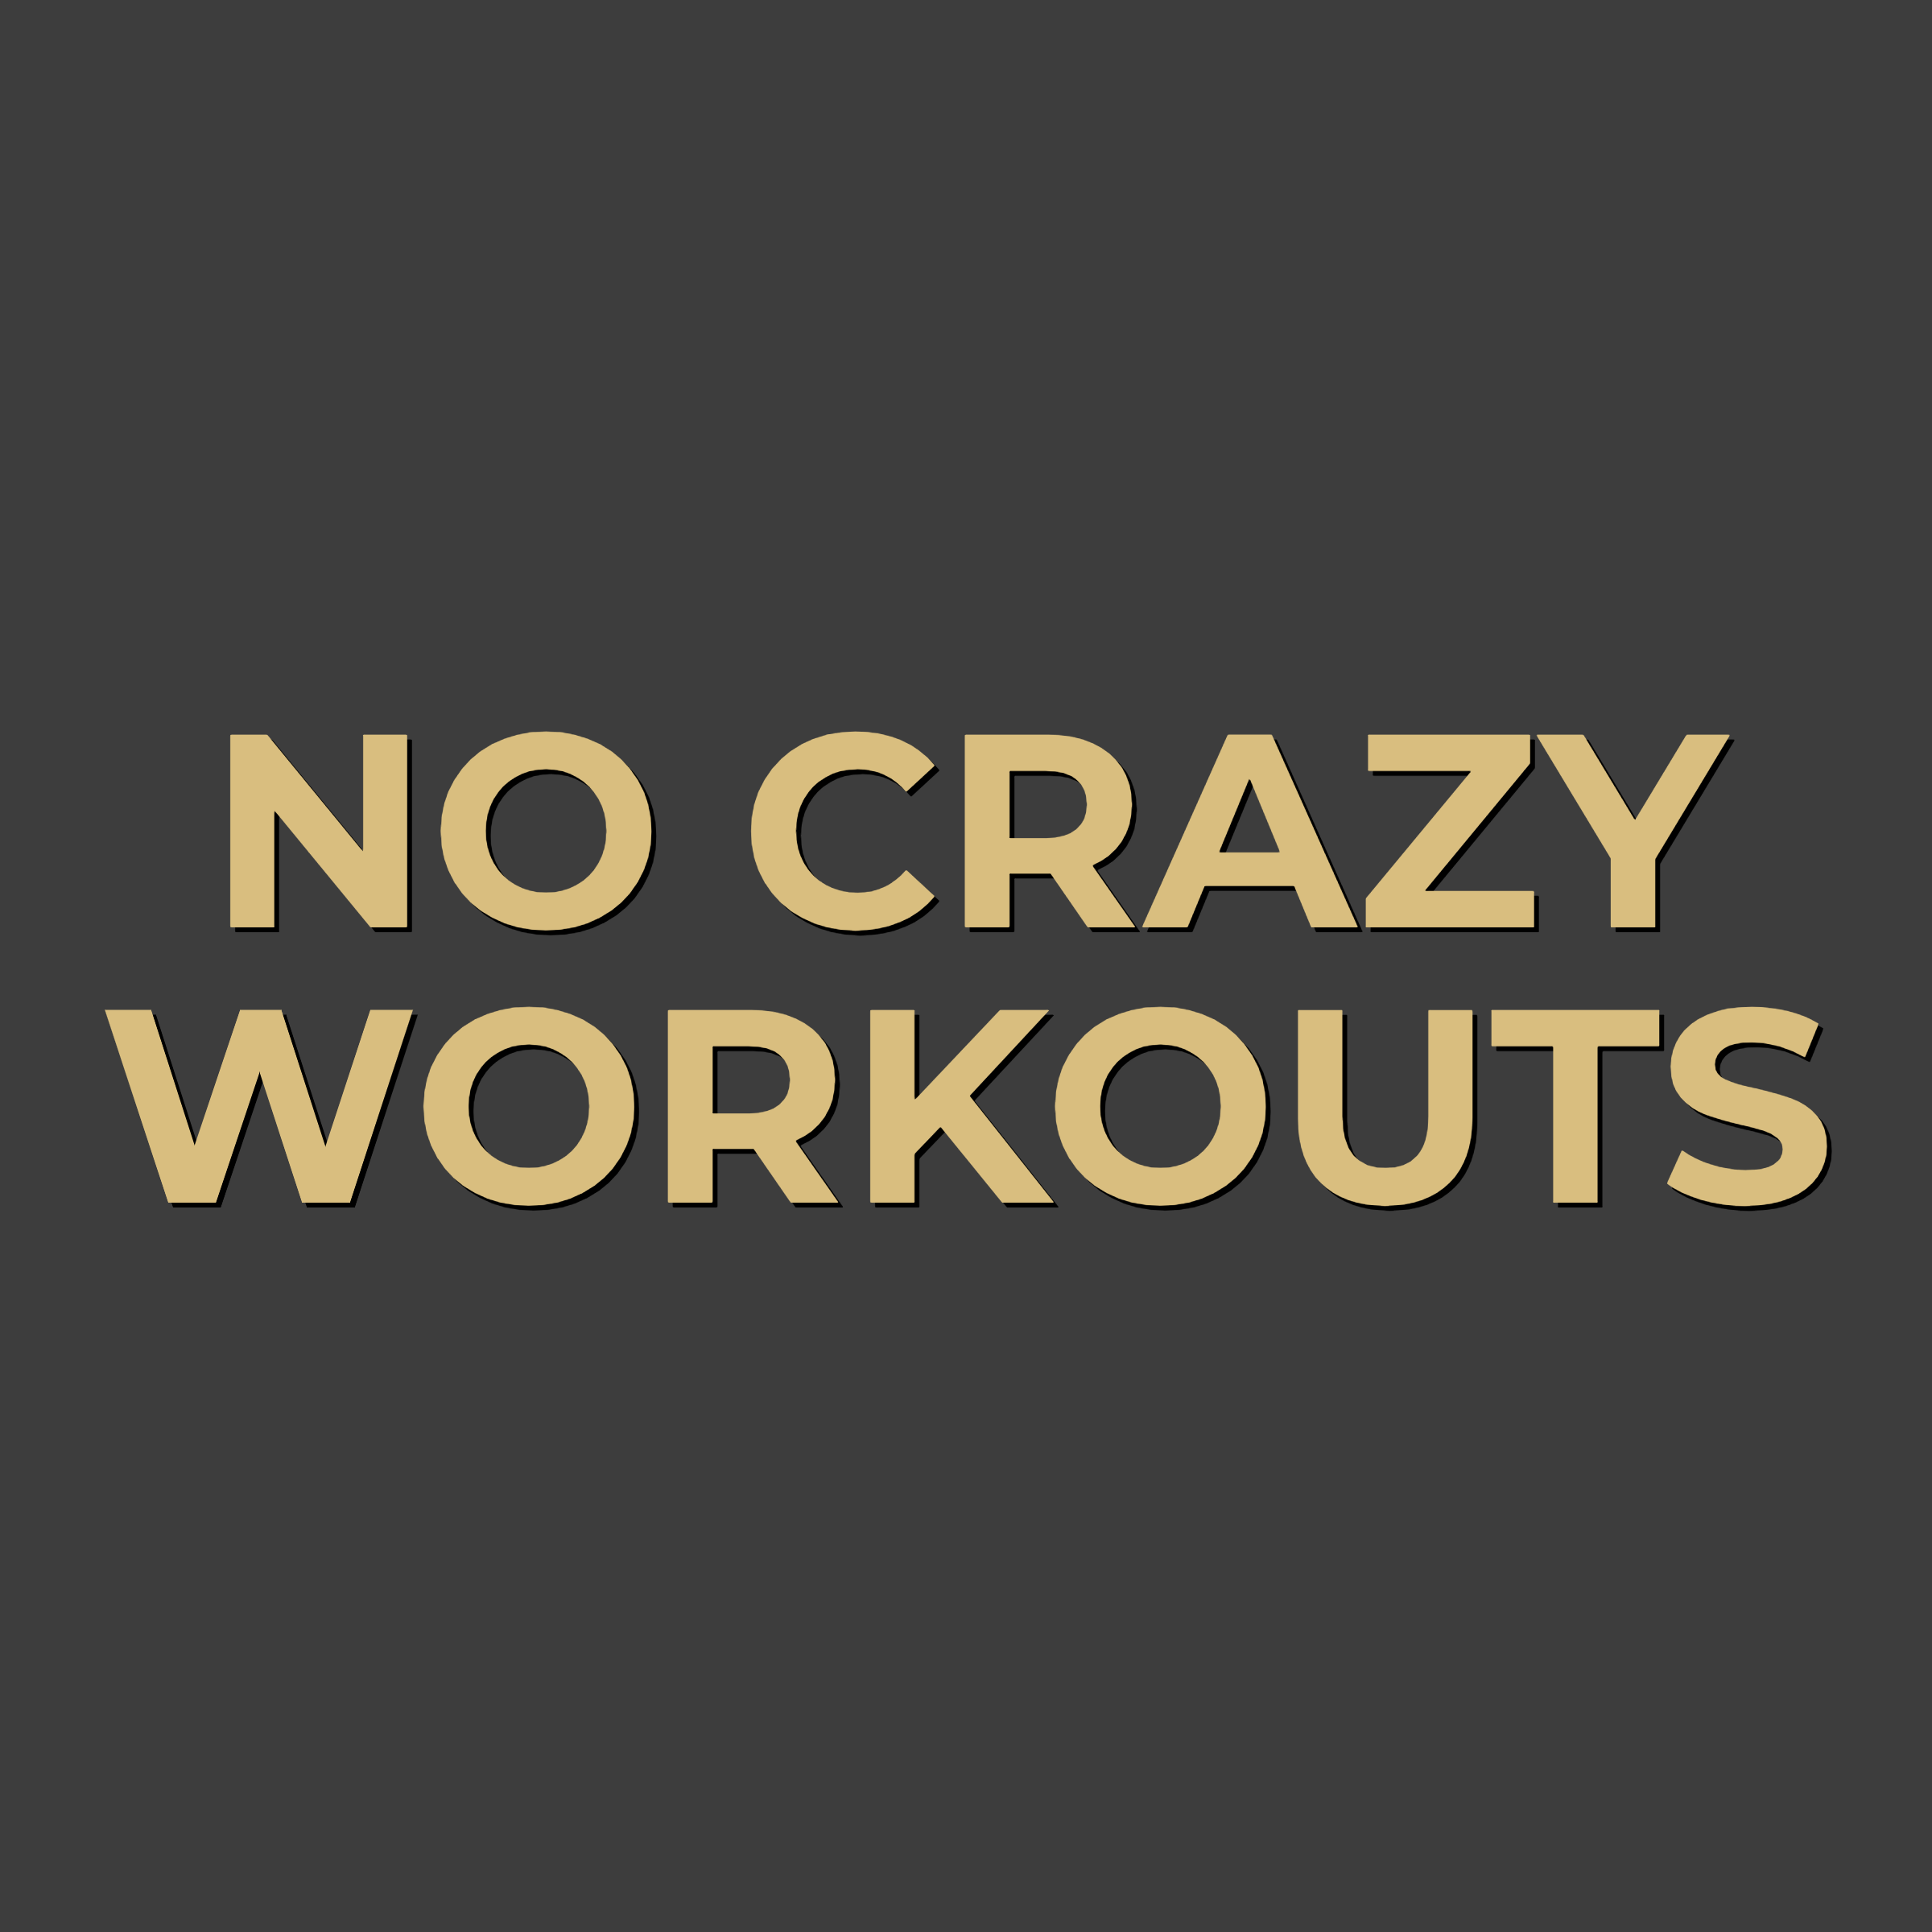 NO CRAZY WORKOUTS.png